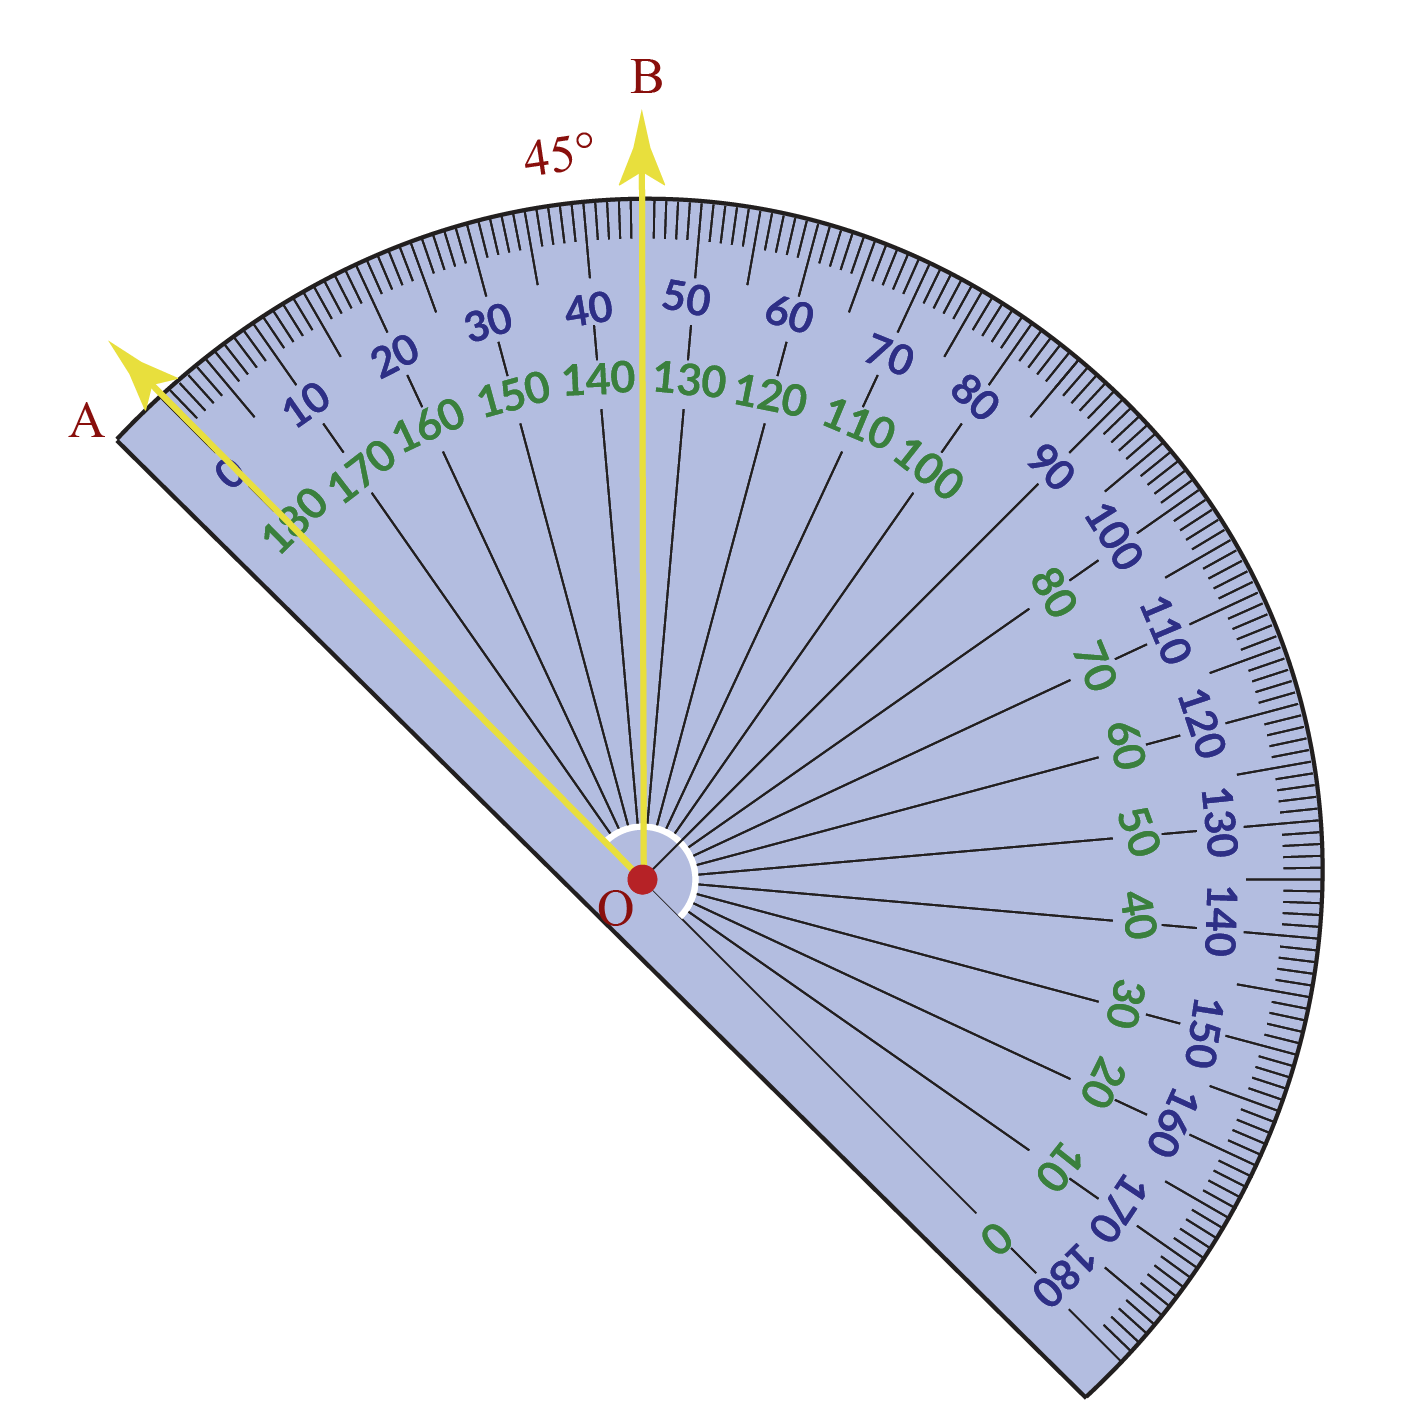 Measuring 45 degrees with the protractor